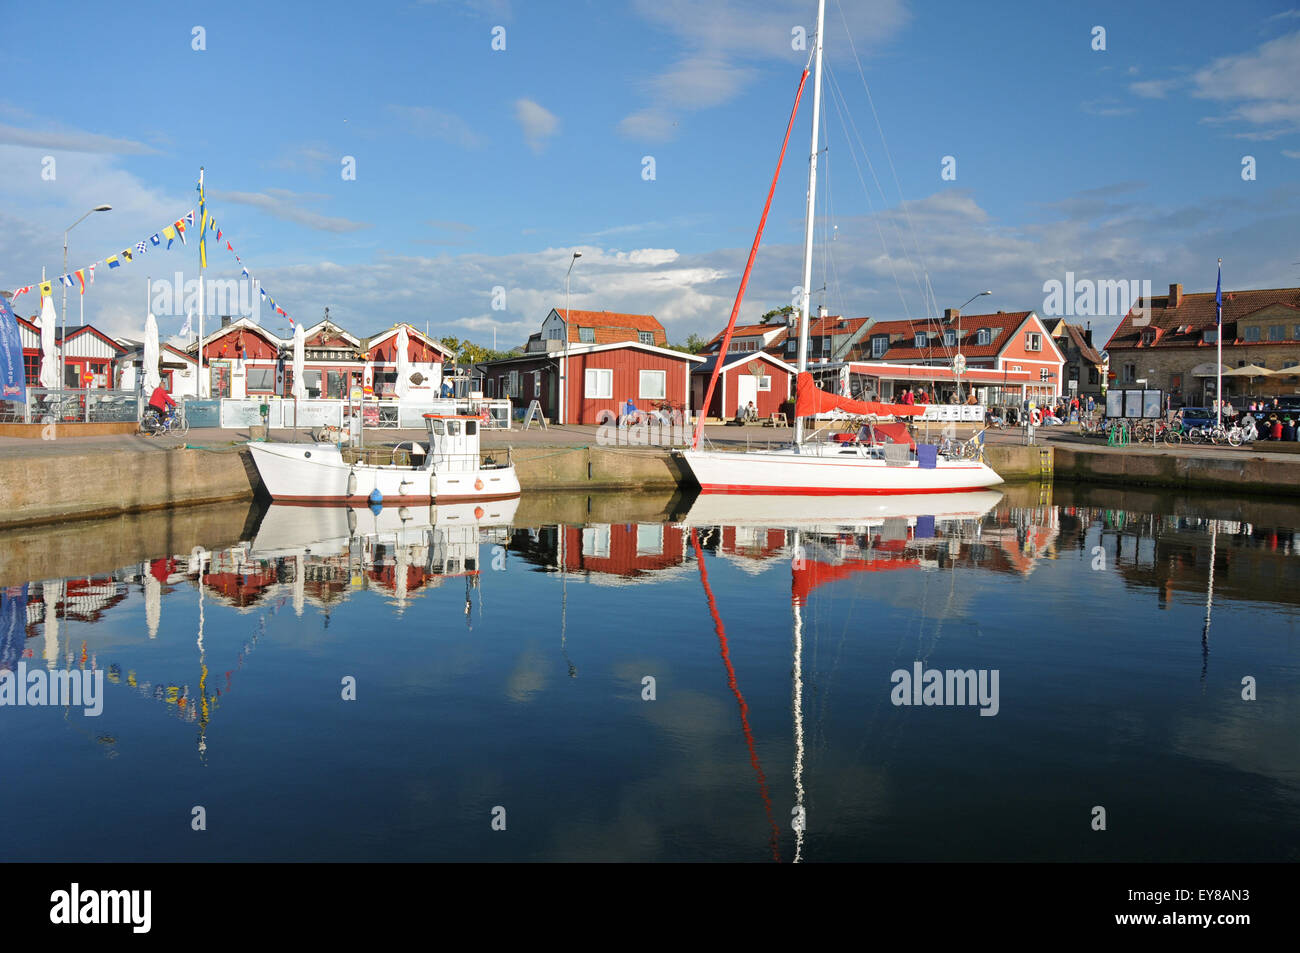 Harbor and boats at West Coast village of Torekov in Skane in Southern Sweden - Stock Image